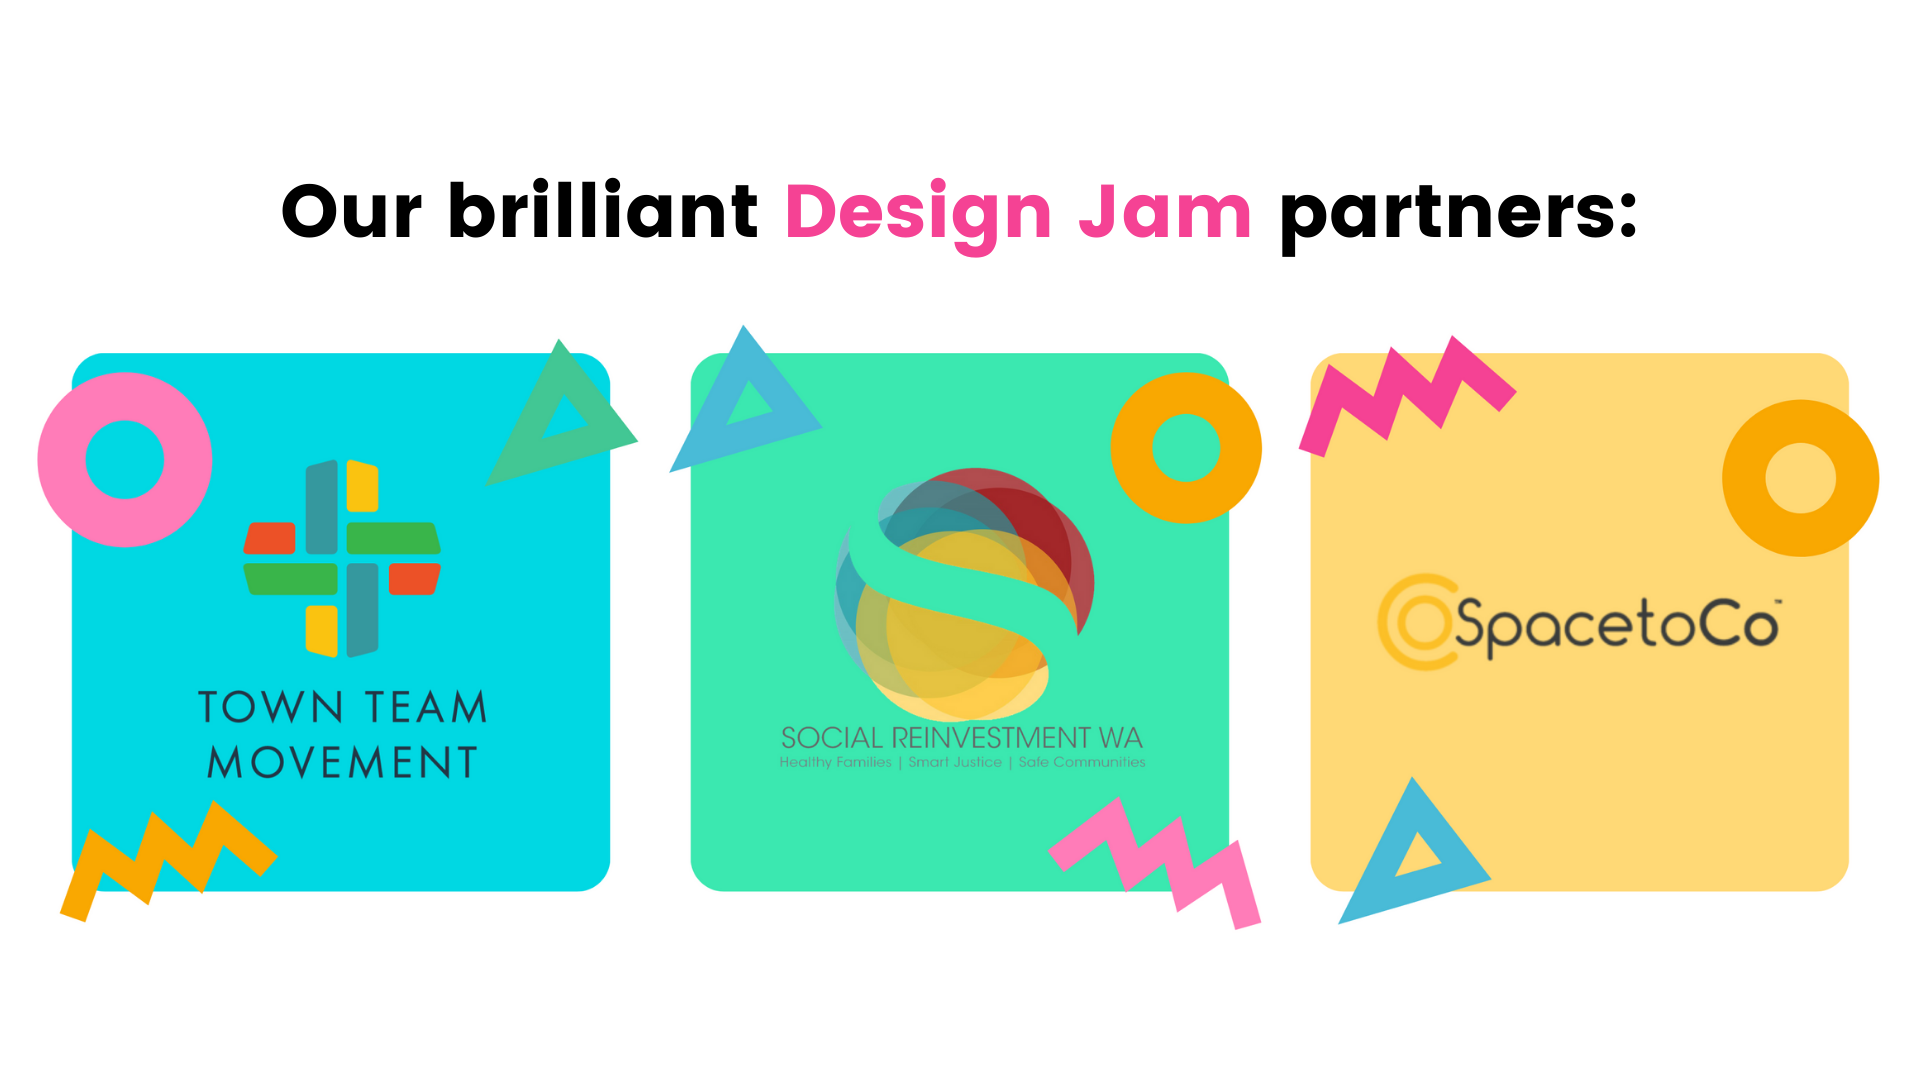 Town team movement,social reinvestment WA and SpacetoCo are all innovating to strengthen local communities at this Design Jam bootcamp